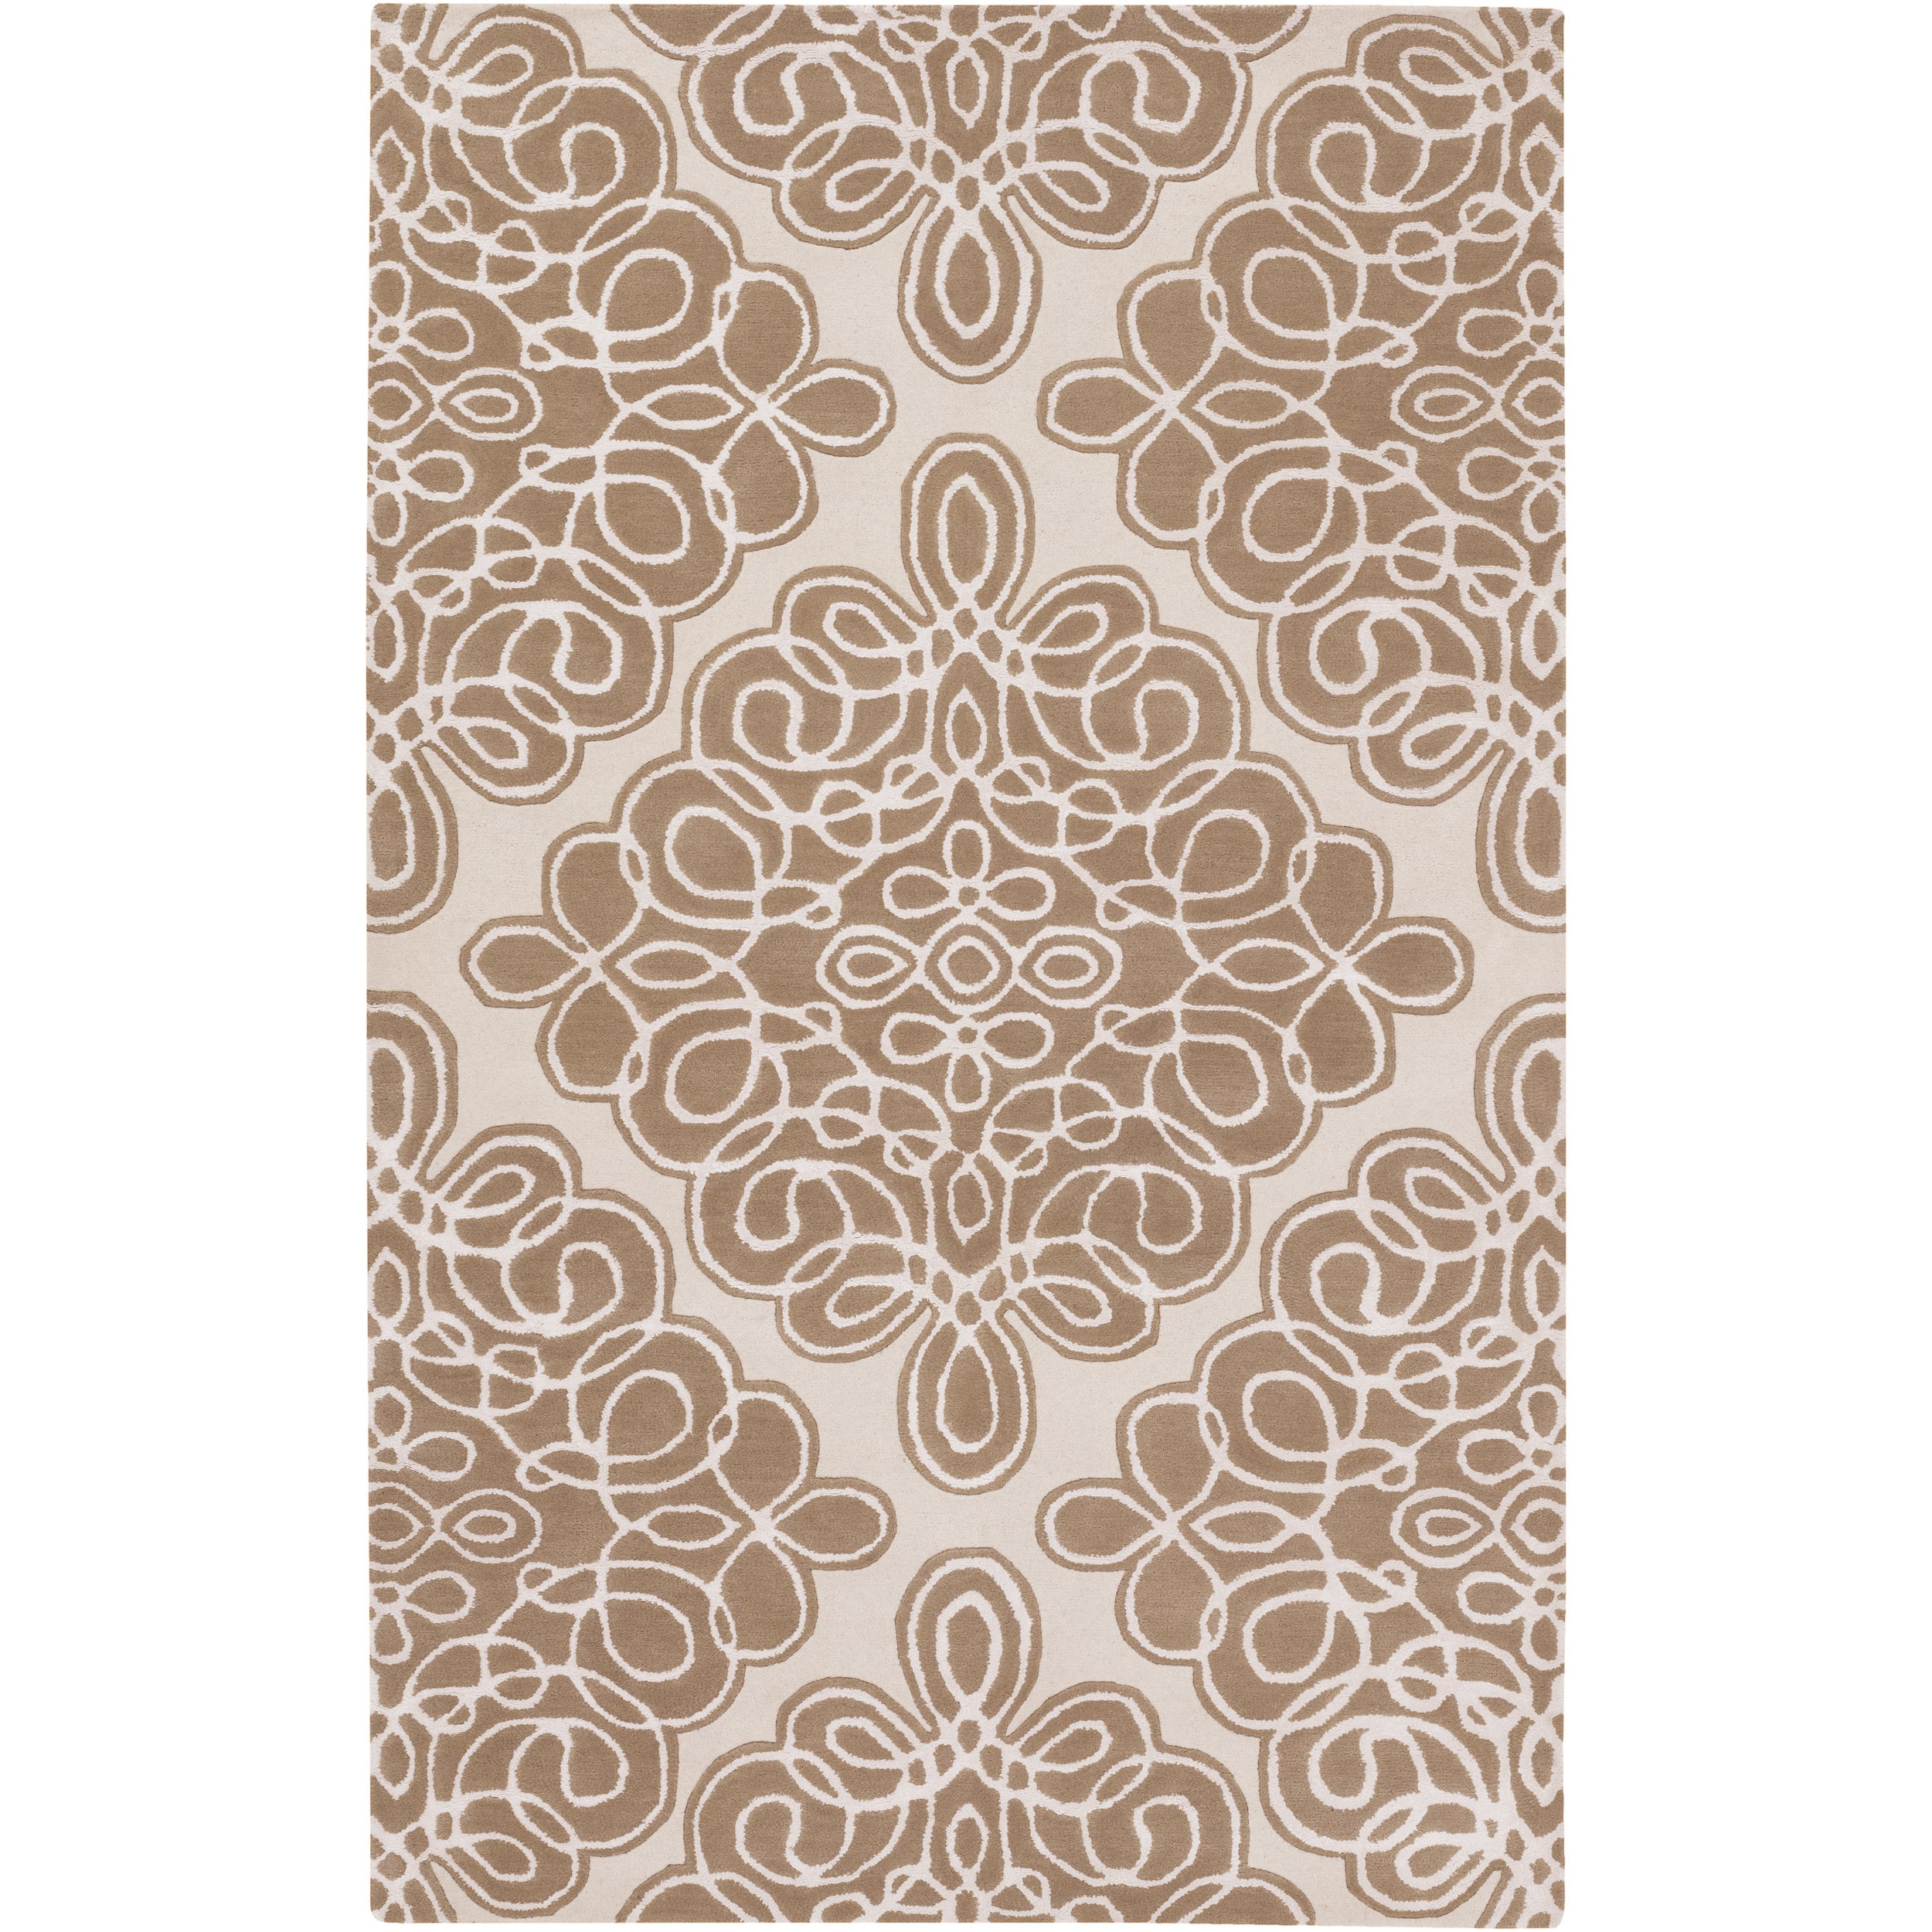 Hand-tufted Wetterstein Geometric Pattern Wool Rug (3'3 x 5'3) - Thumbnail 0